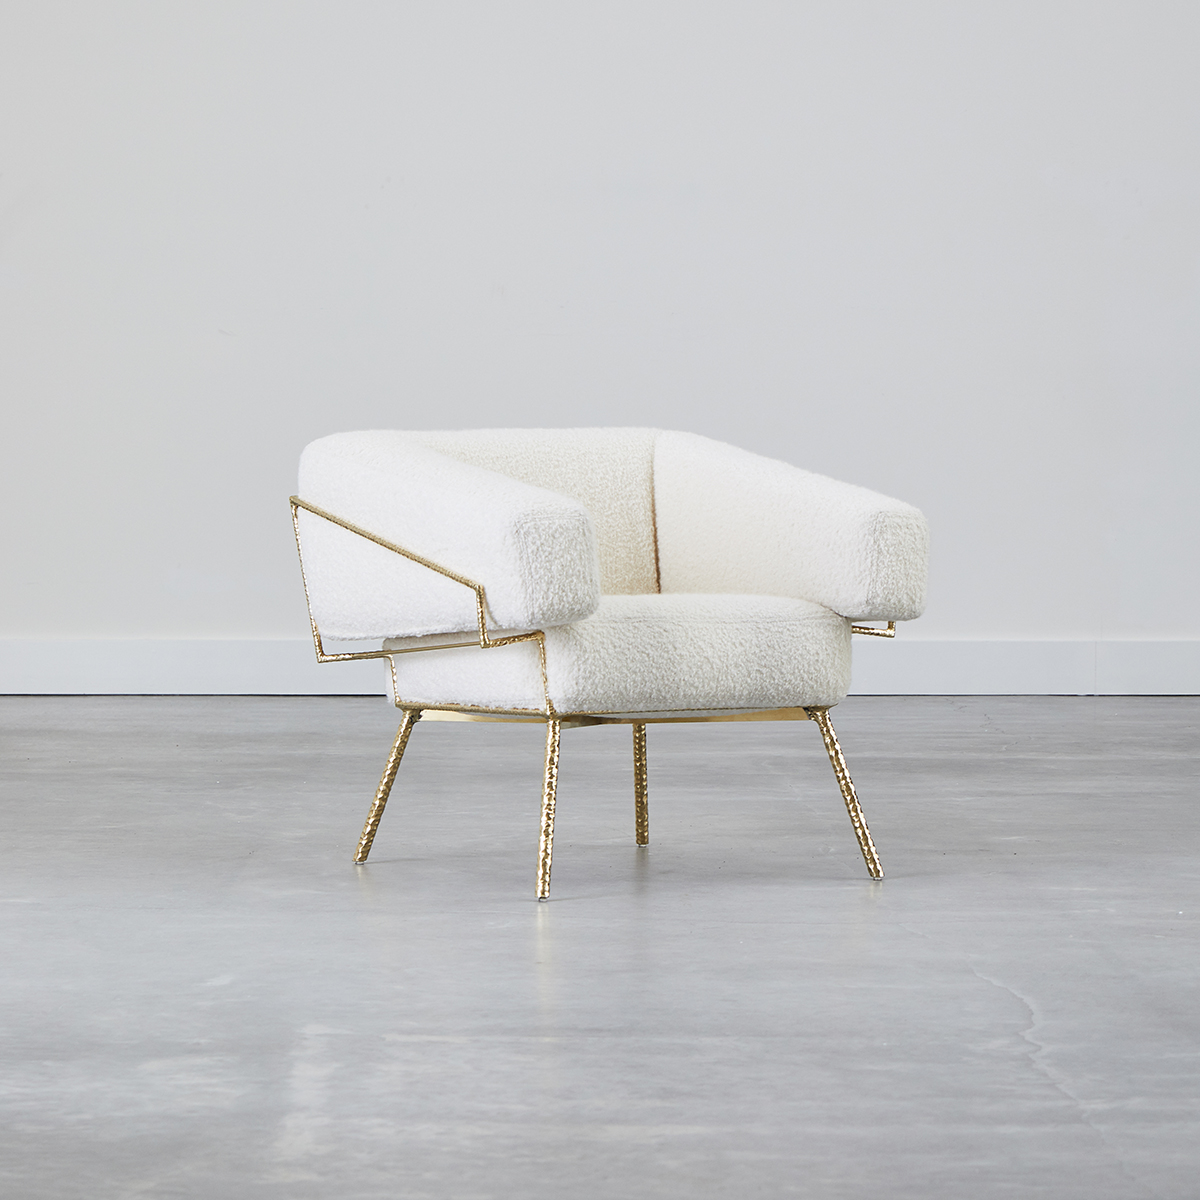 Oblique Chair by COUP STUDIO